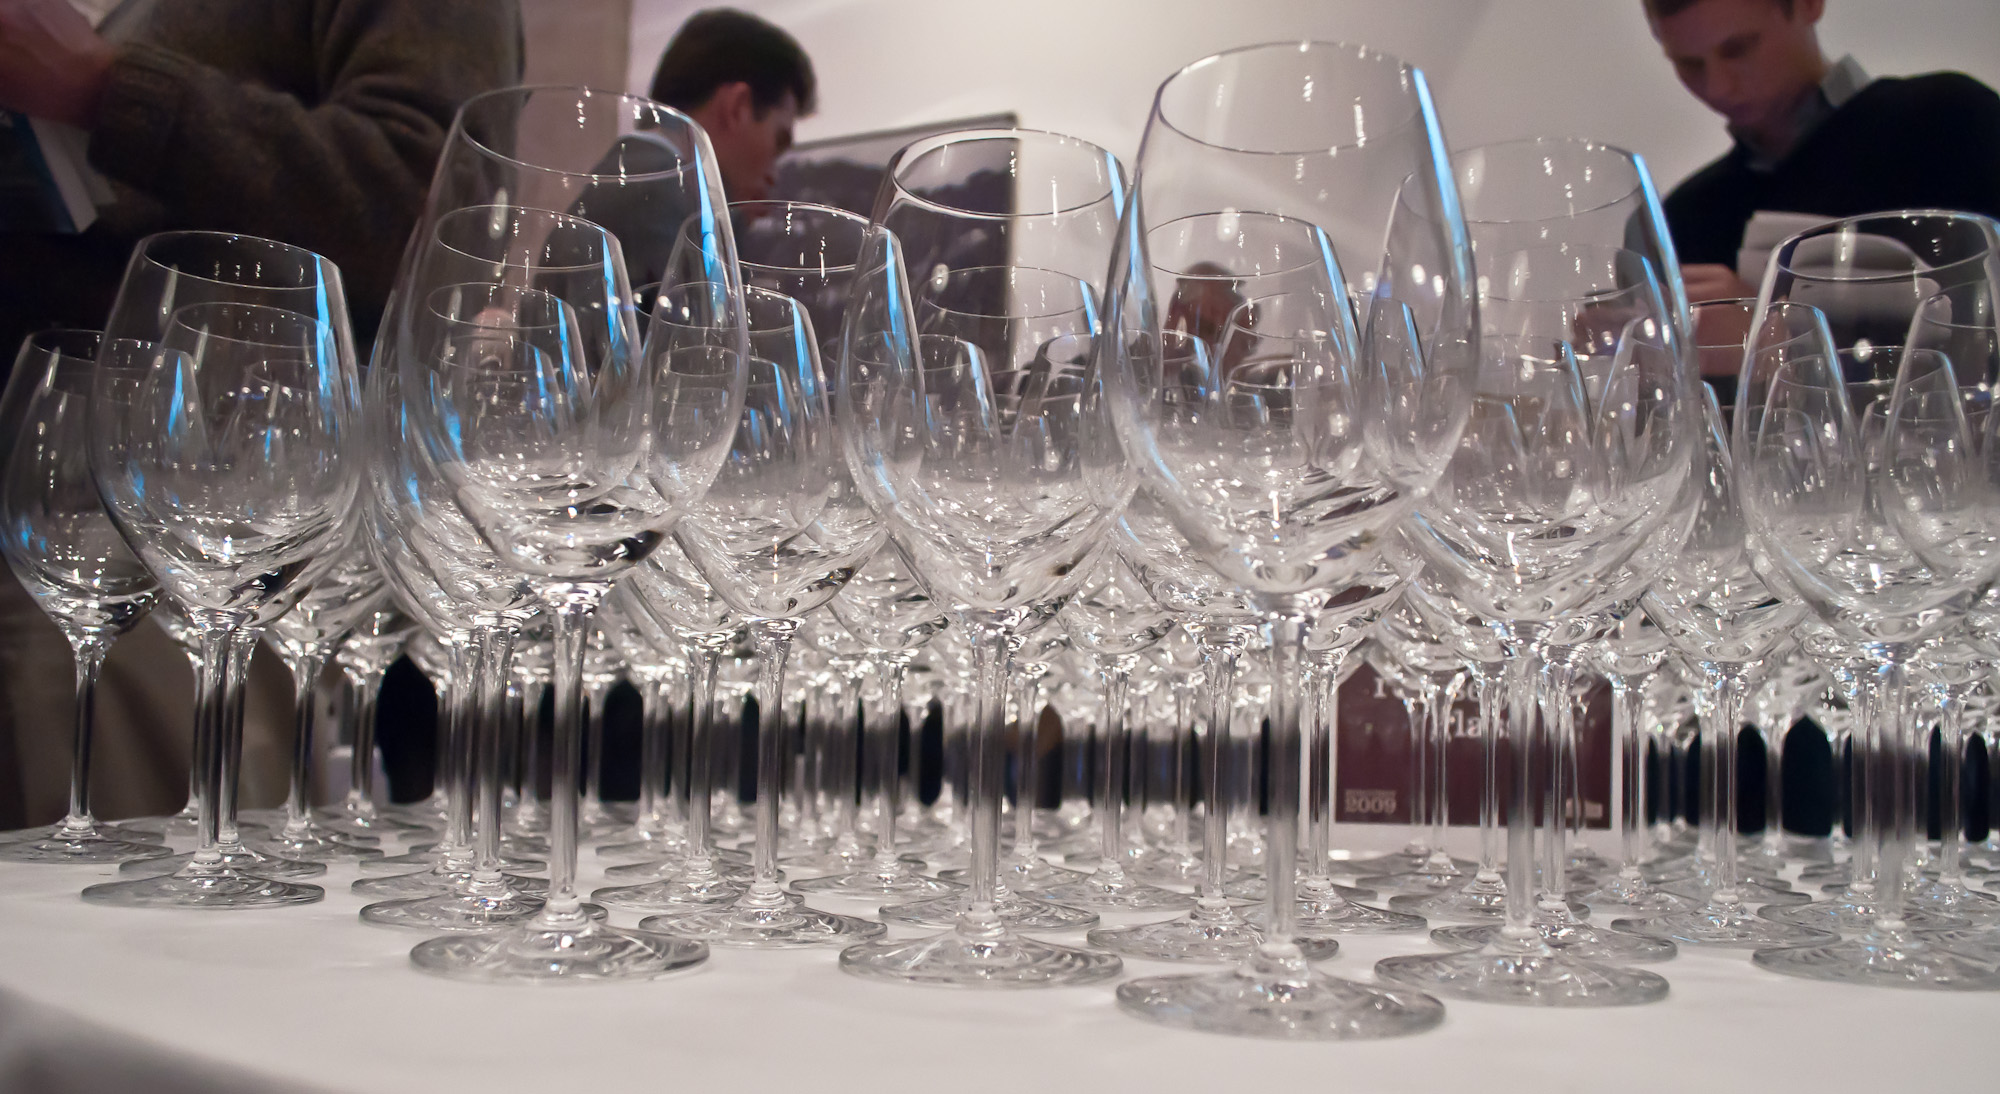 forest of glasses